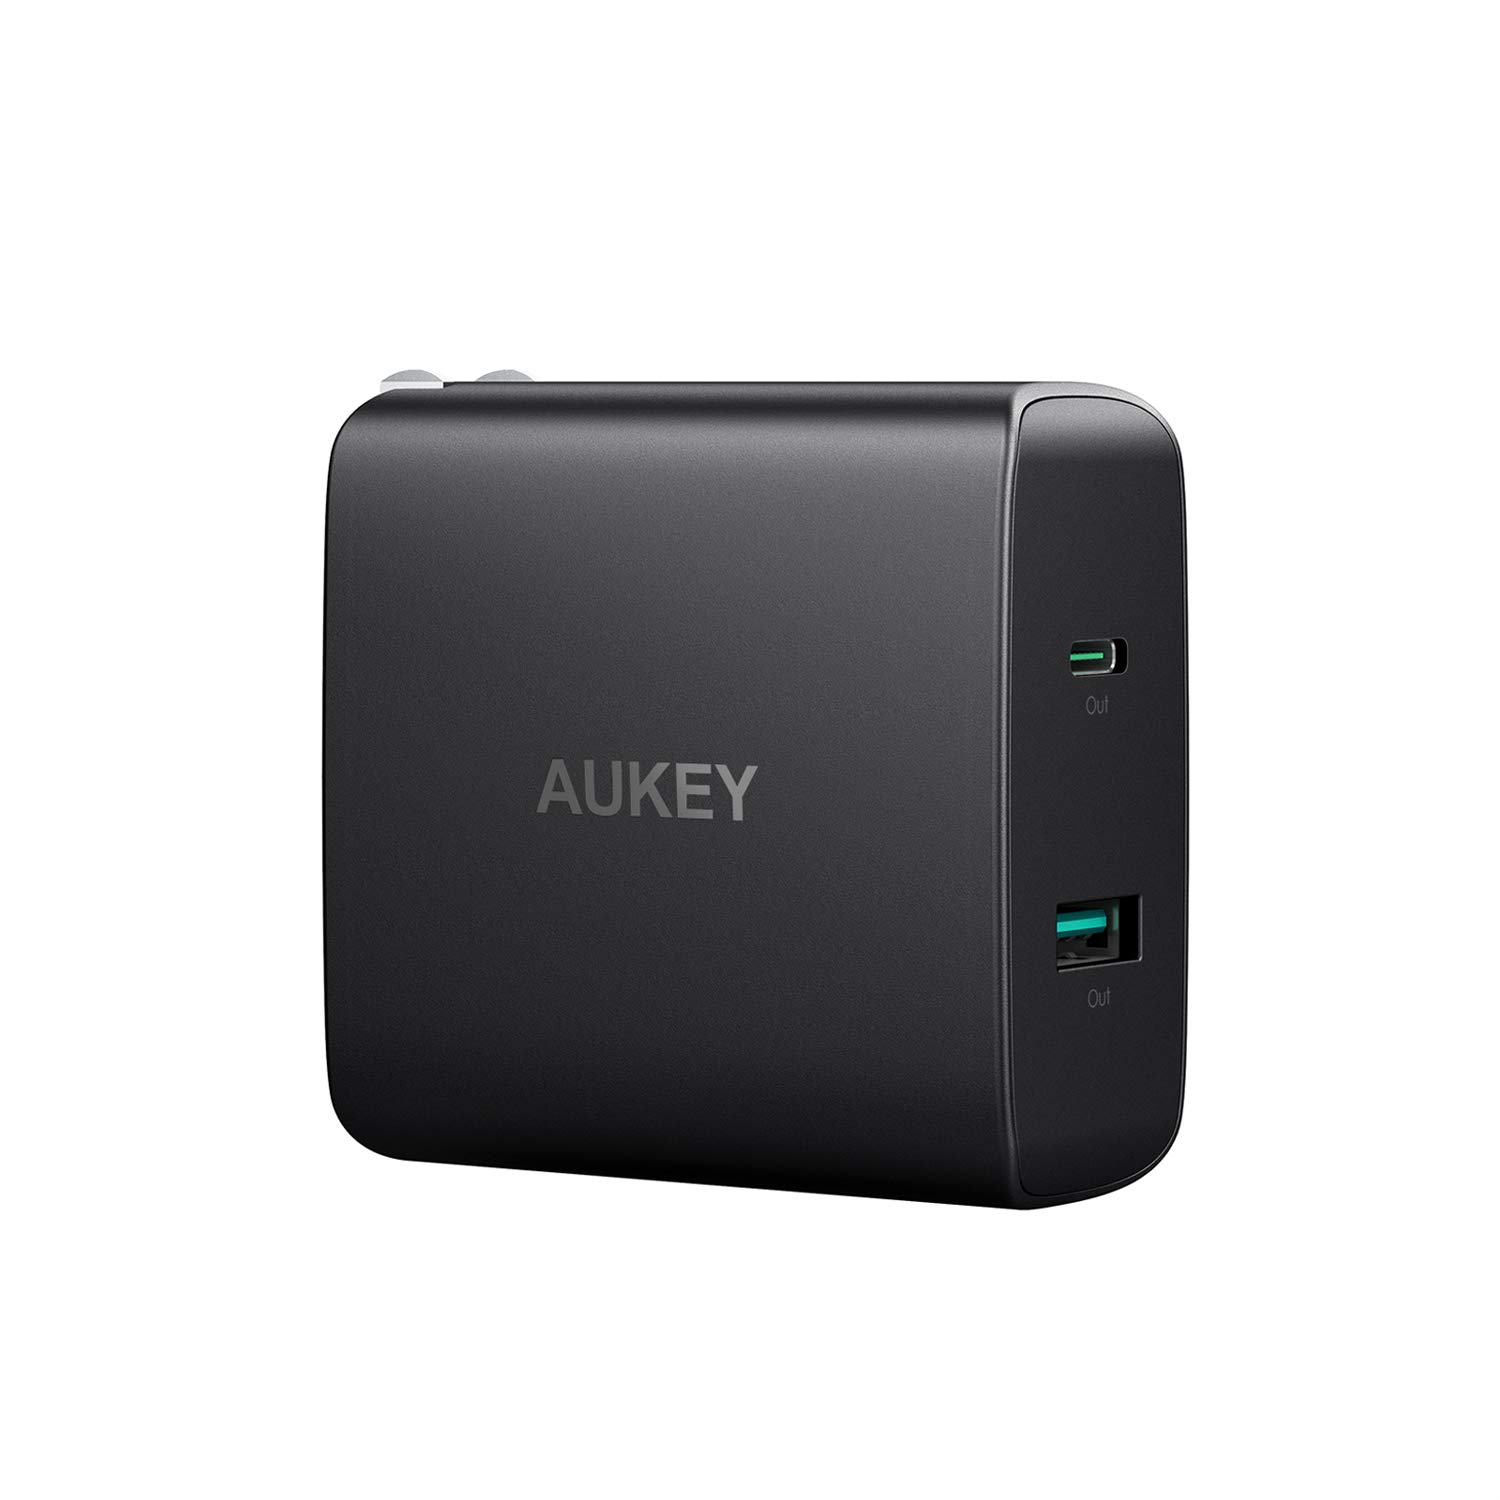 AUKEY USB C Charger with 56.5W Wall Charger, One 46W Power Delivery 3.0 & 5V / 2.1A Ports USB Wall Charger, Compatible MacBook, iPhone Xs/XS Max/XR, Samsung Galaxy S8 / S8+ / Note8 and More